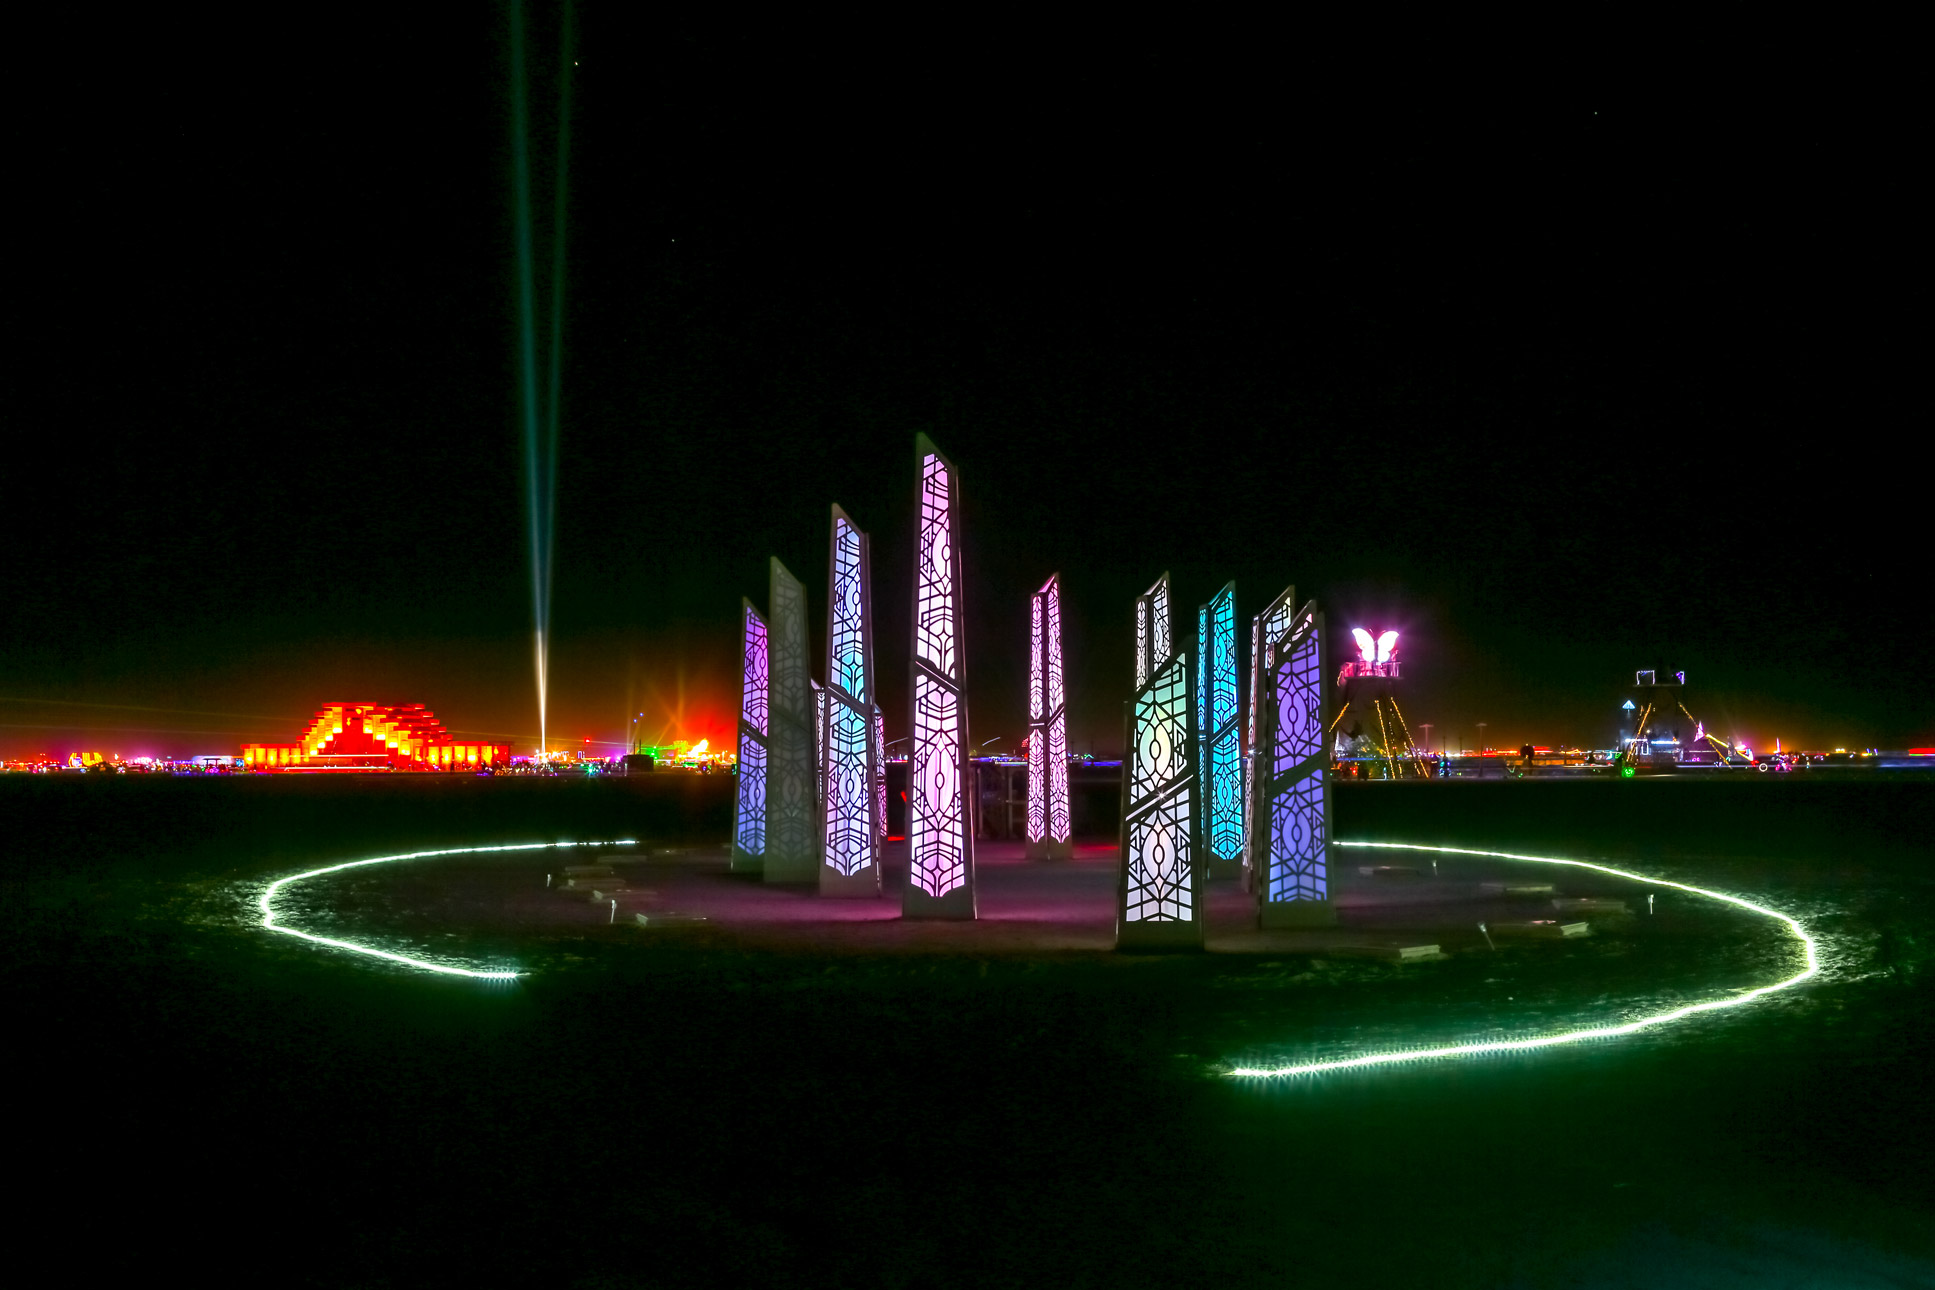 Wind Chest at Burning Man 2019